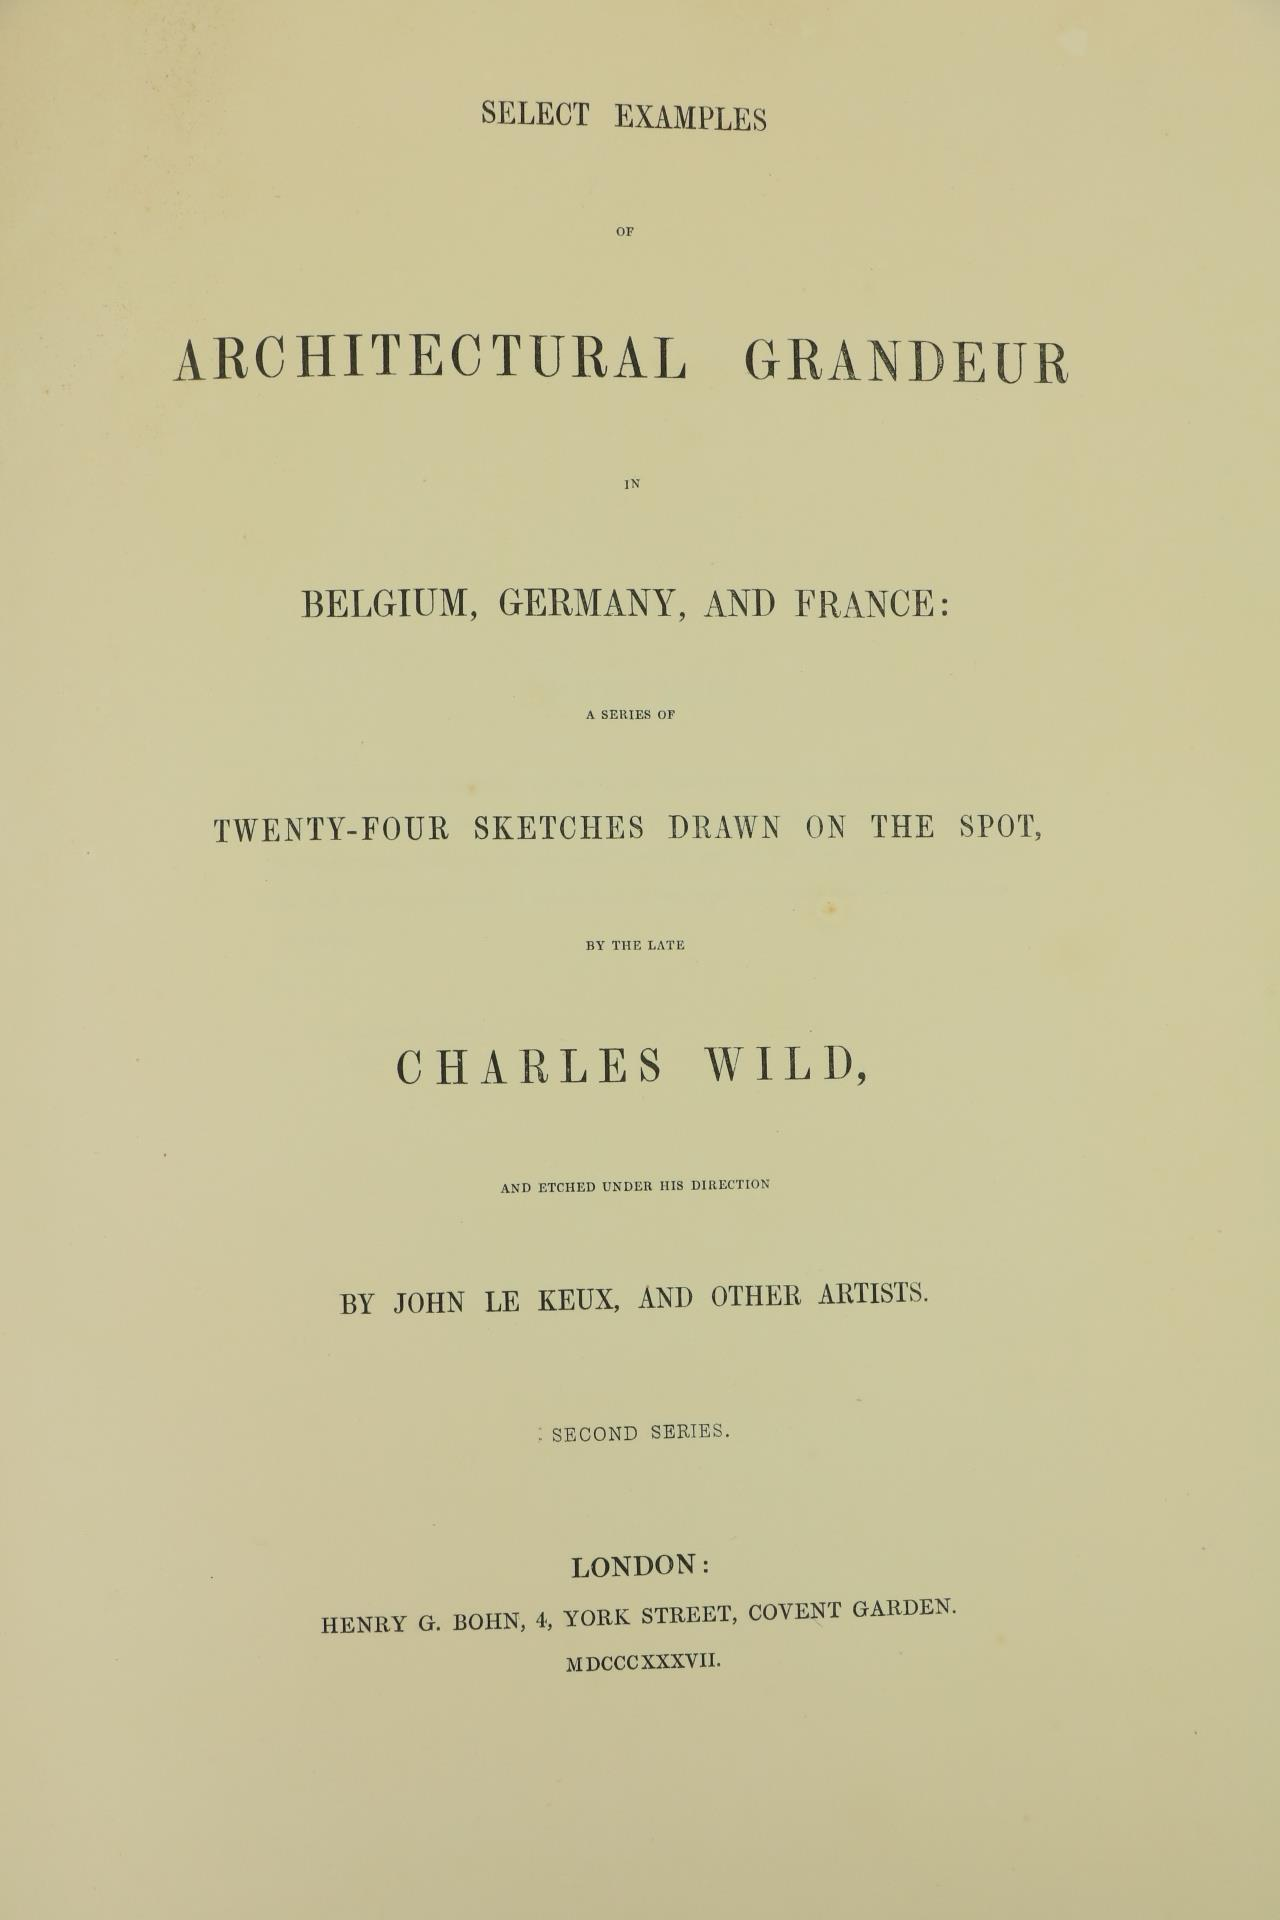 Wild (Charles)ÿSelect Examples of Architectural Grandeur in Belgium, Germany and France, Lg. folio - Image 5 of 6